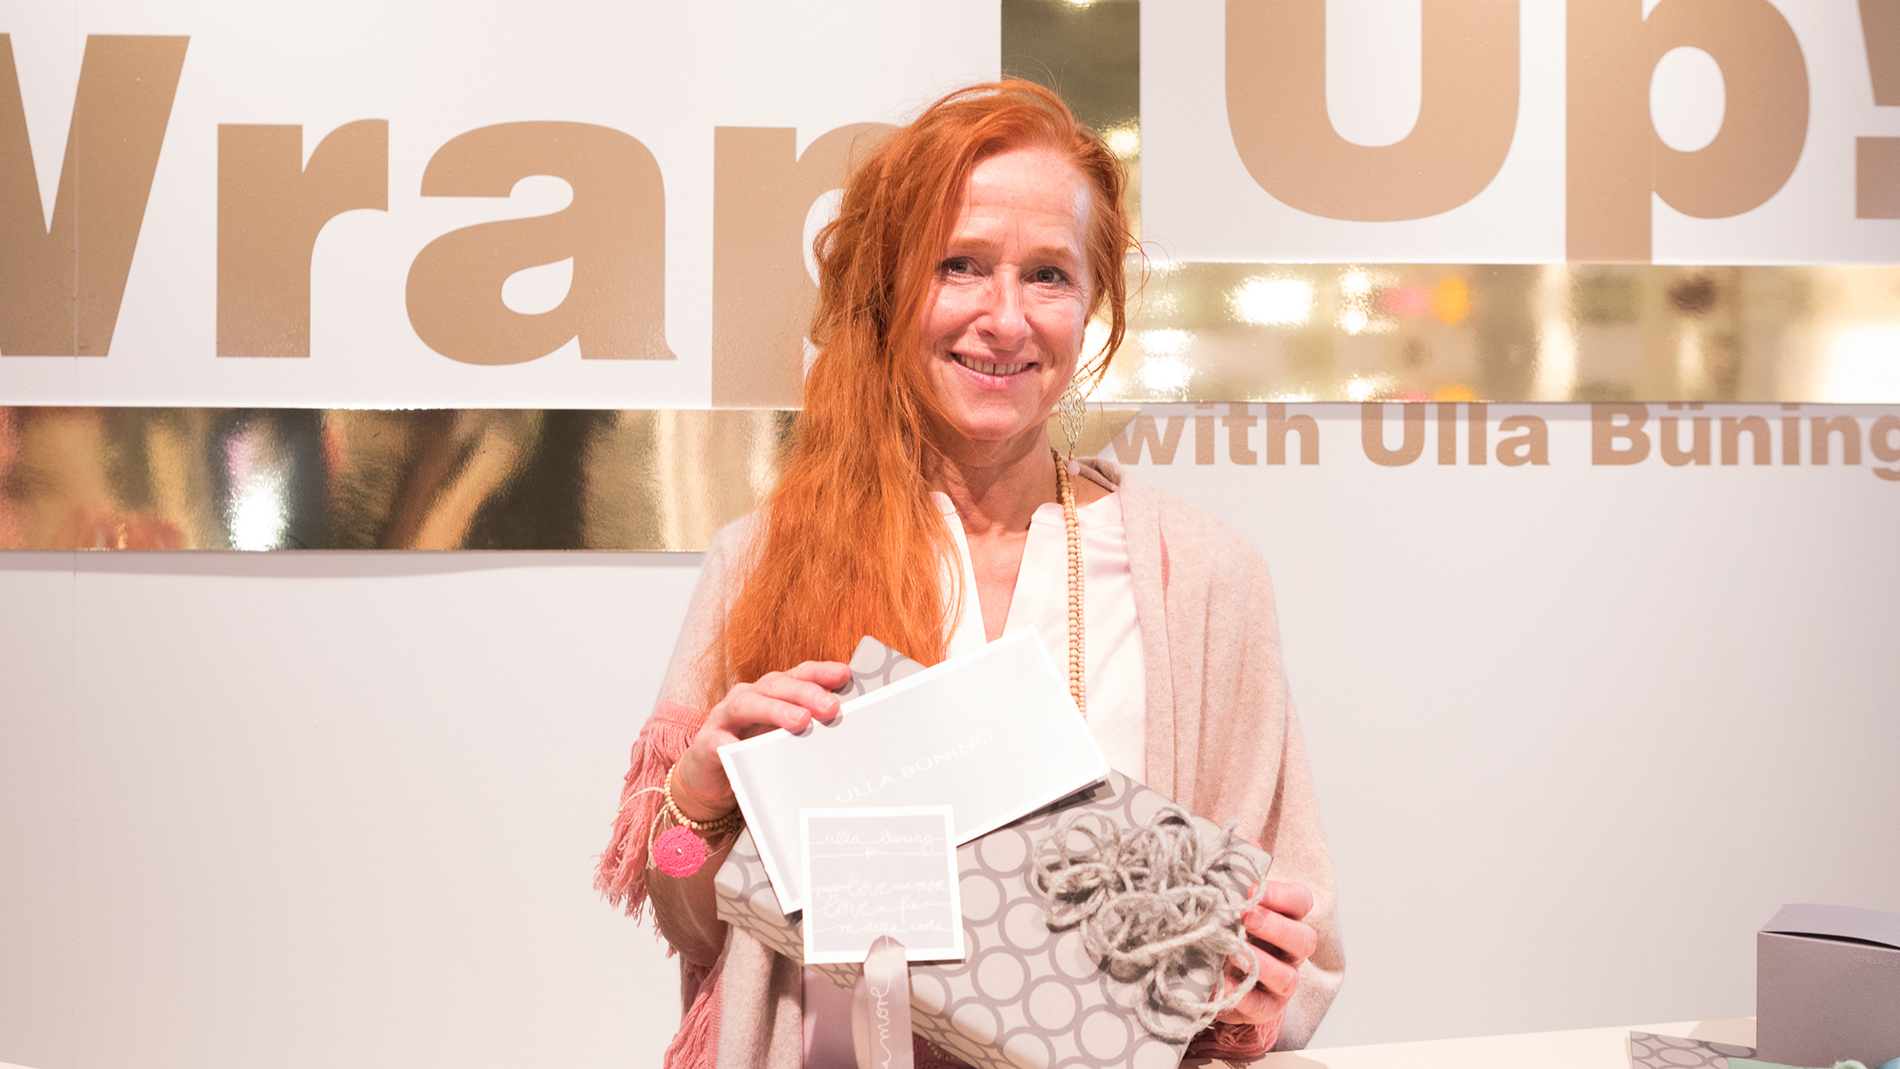 Packaging expert Ulla Büning presents trends for attractive gift wrapping at wrap up